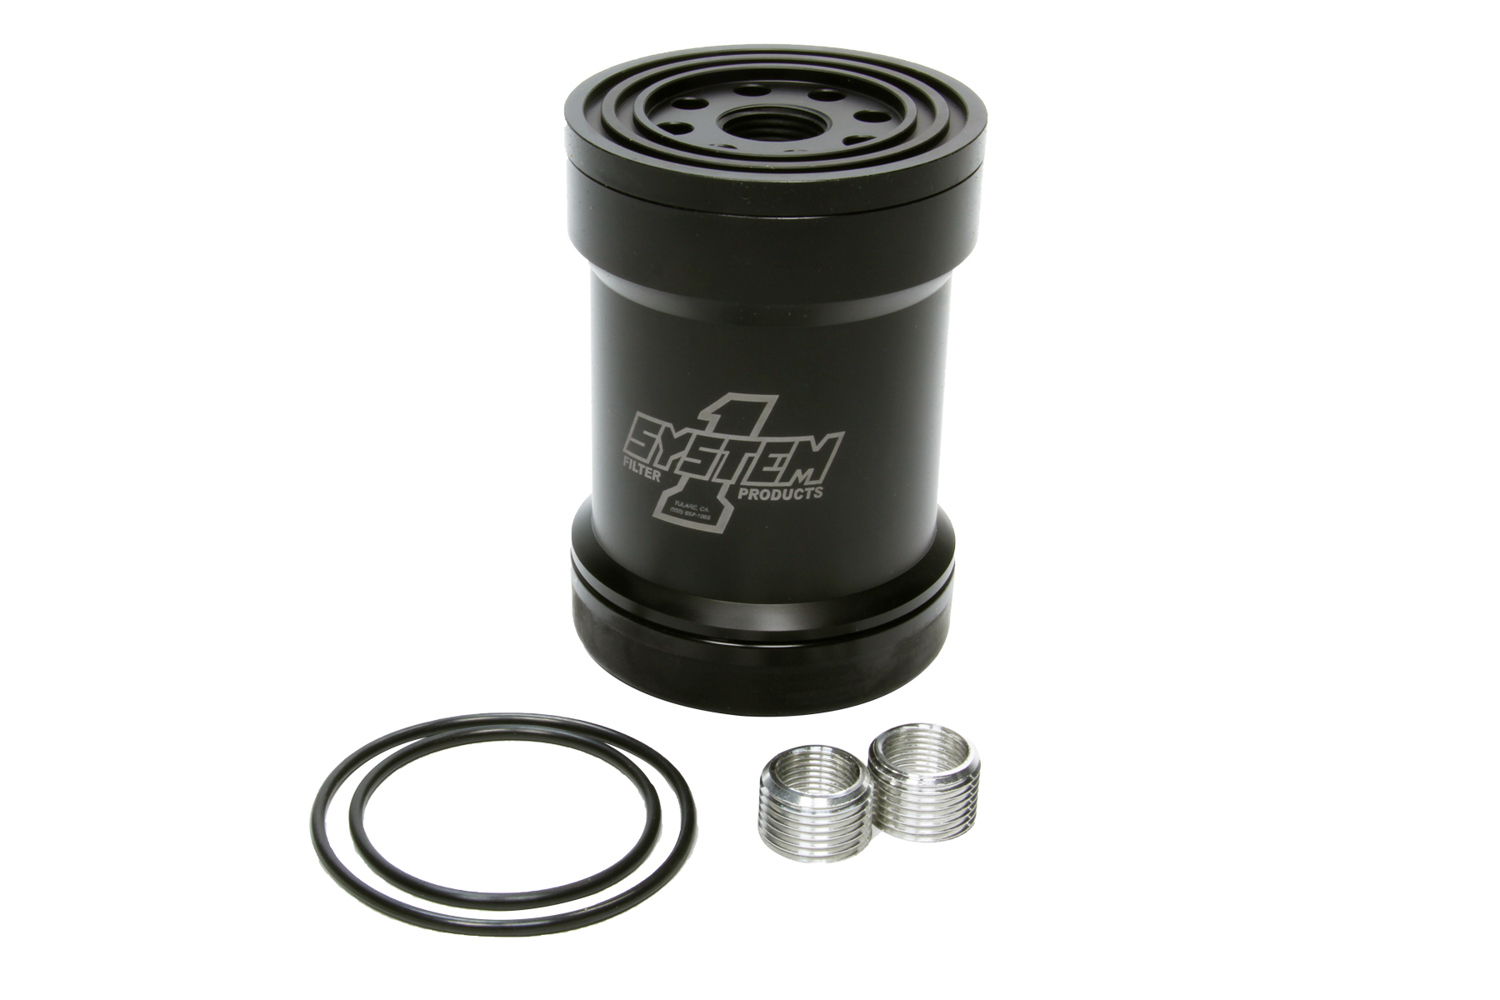 System One 209-561B Oil Filter, Canister, Screw-On, 5-3/4 in Tall, 1-12 in Thread, 45 Micron Replaceable Element, Aluminum, Black Anodized, Universal, Each